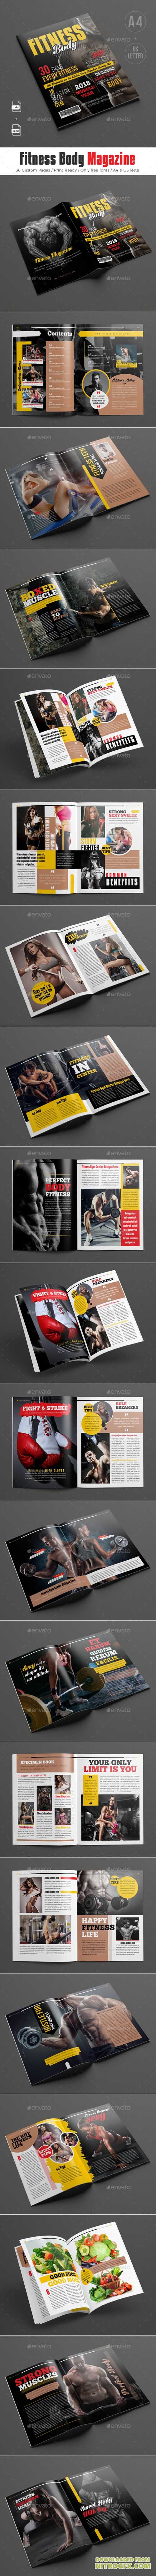 GR - Fitness Body Magazine 20887879